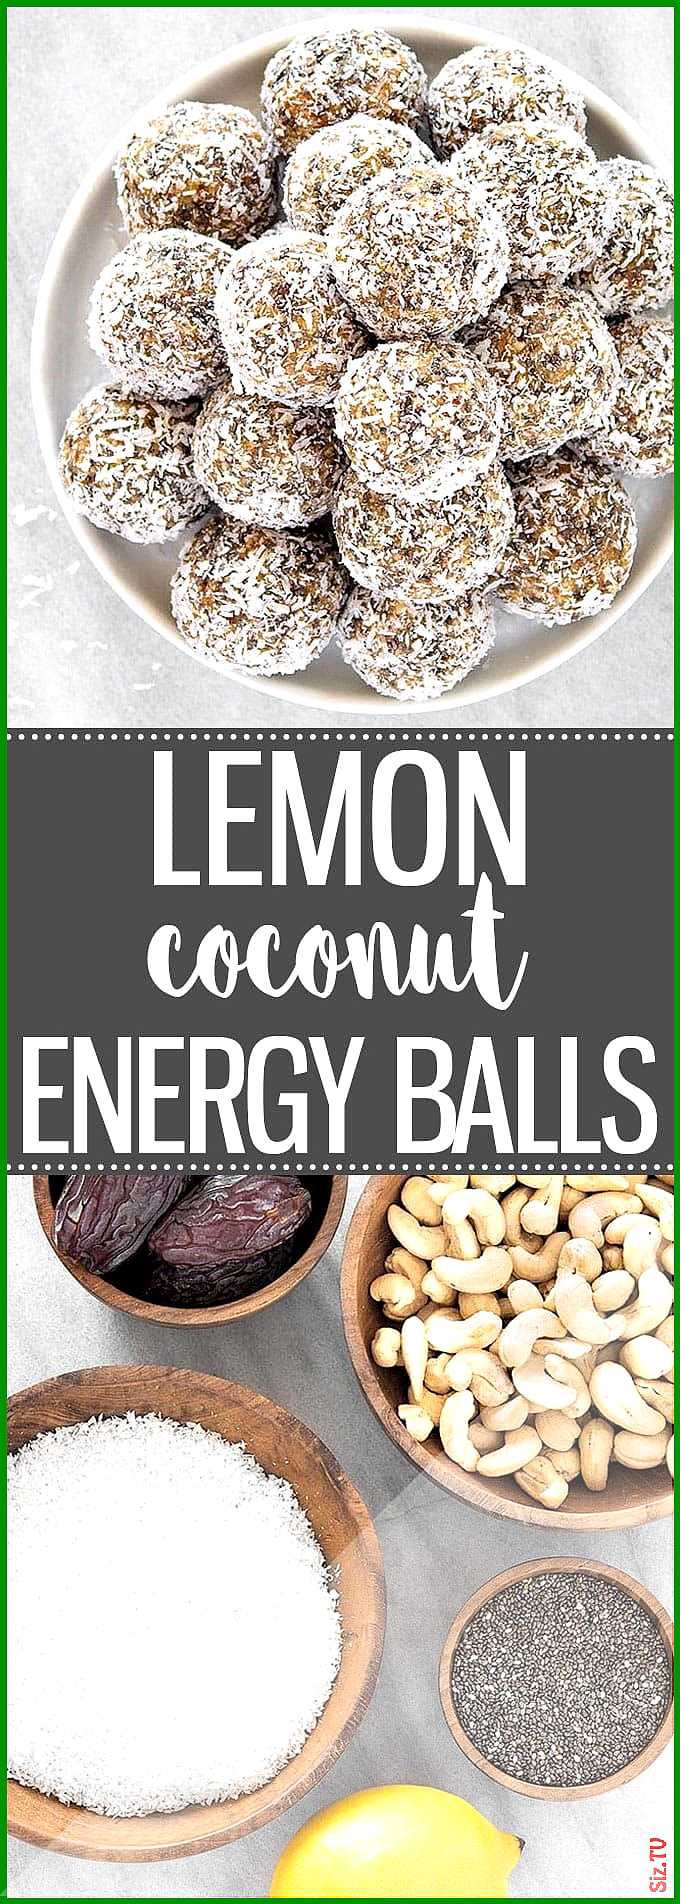 Healthy Lemon Coconut Energy Balls Healthy Lemon Coconut Energy Balls Hanne Br ning hannebrning Ess